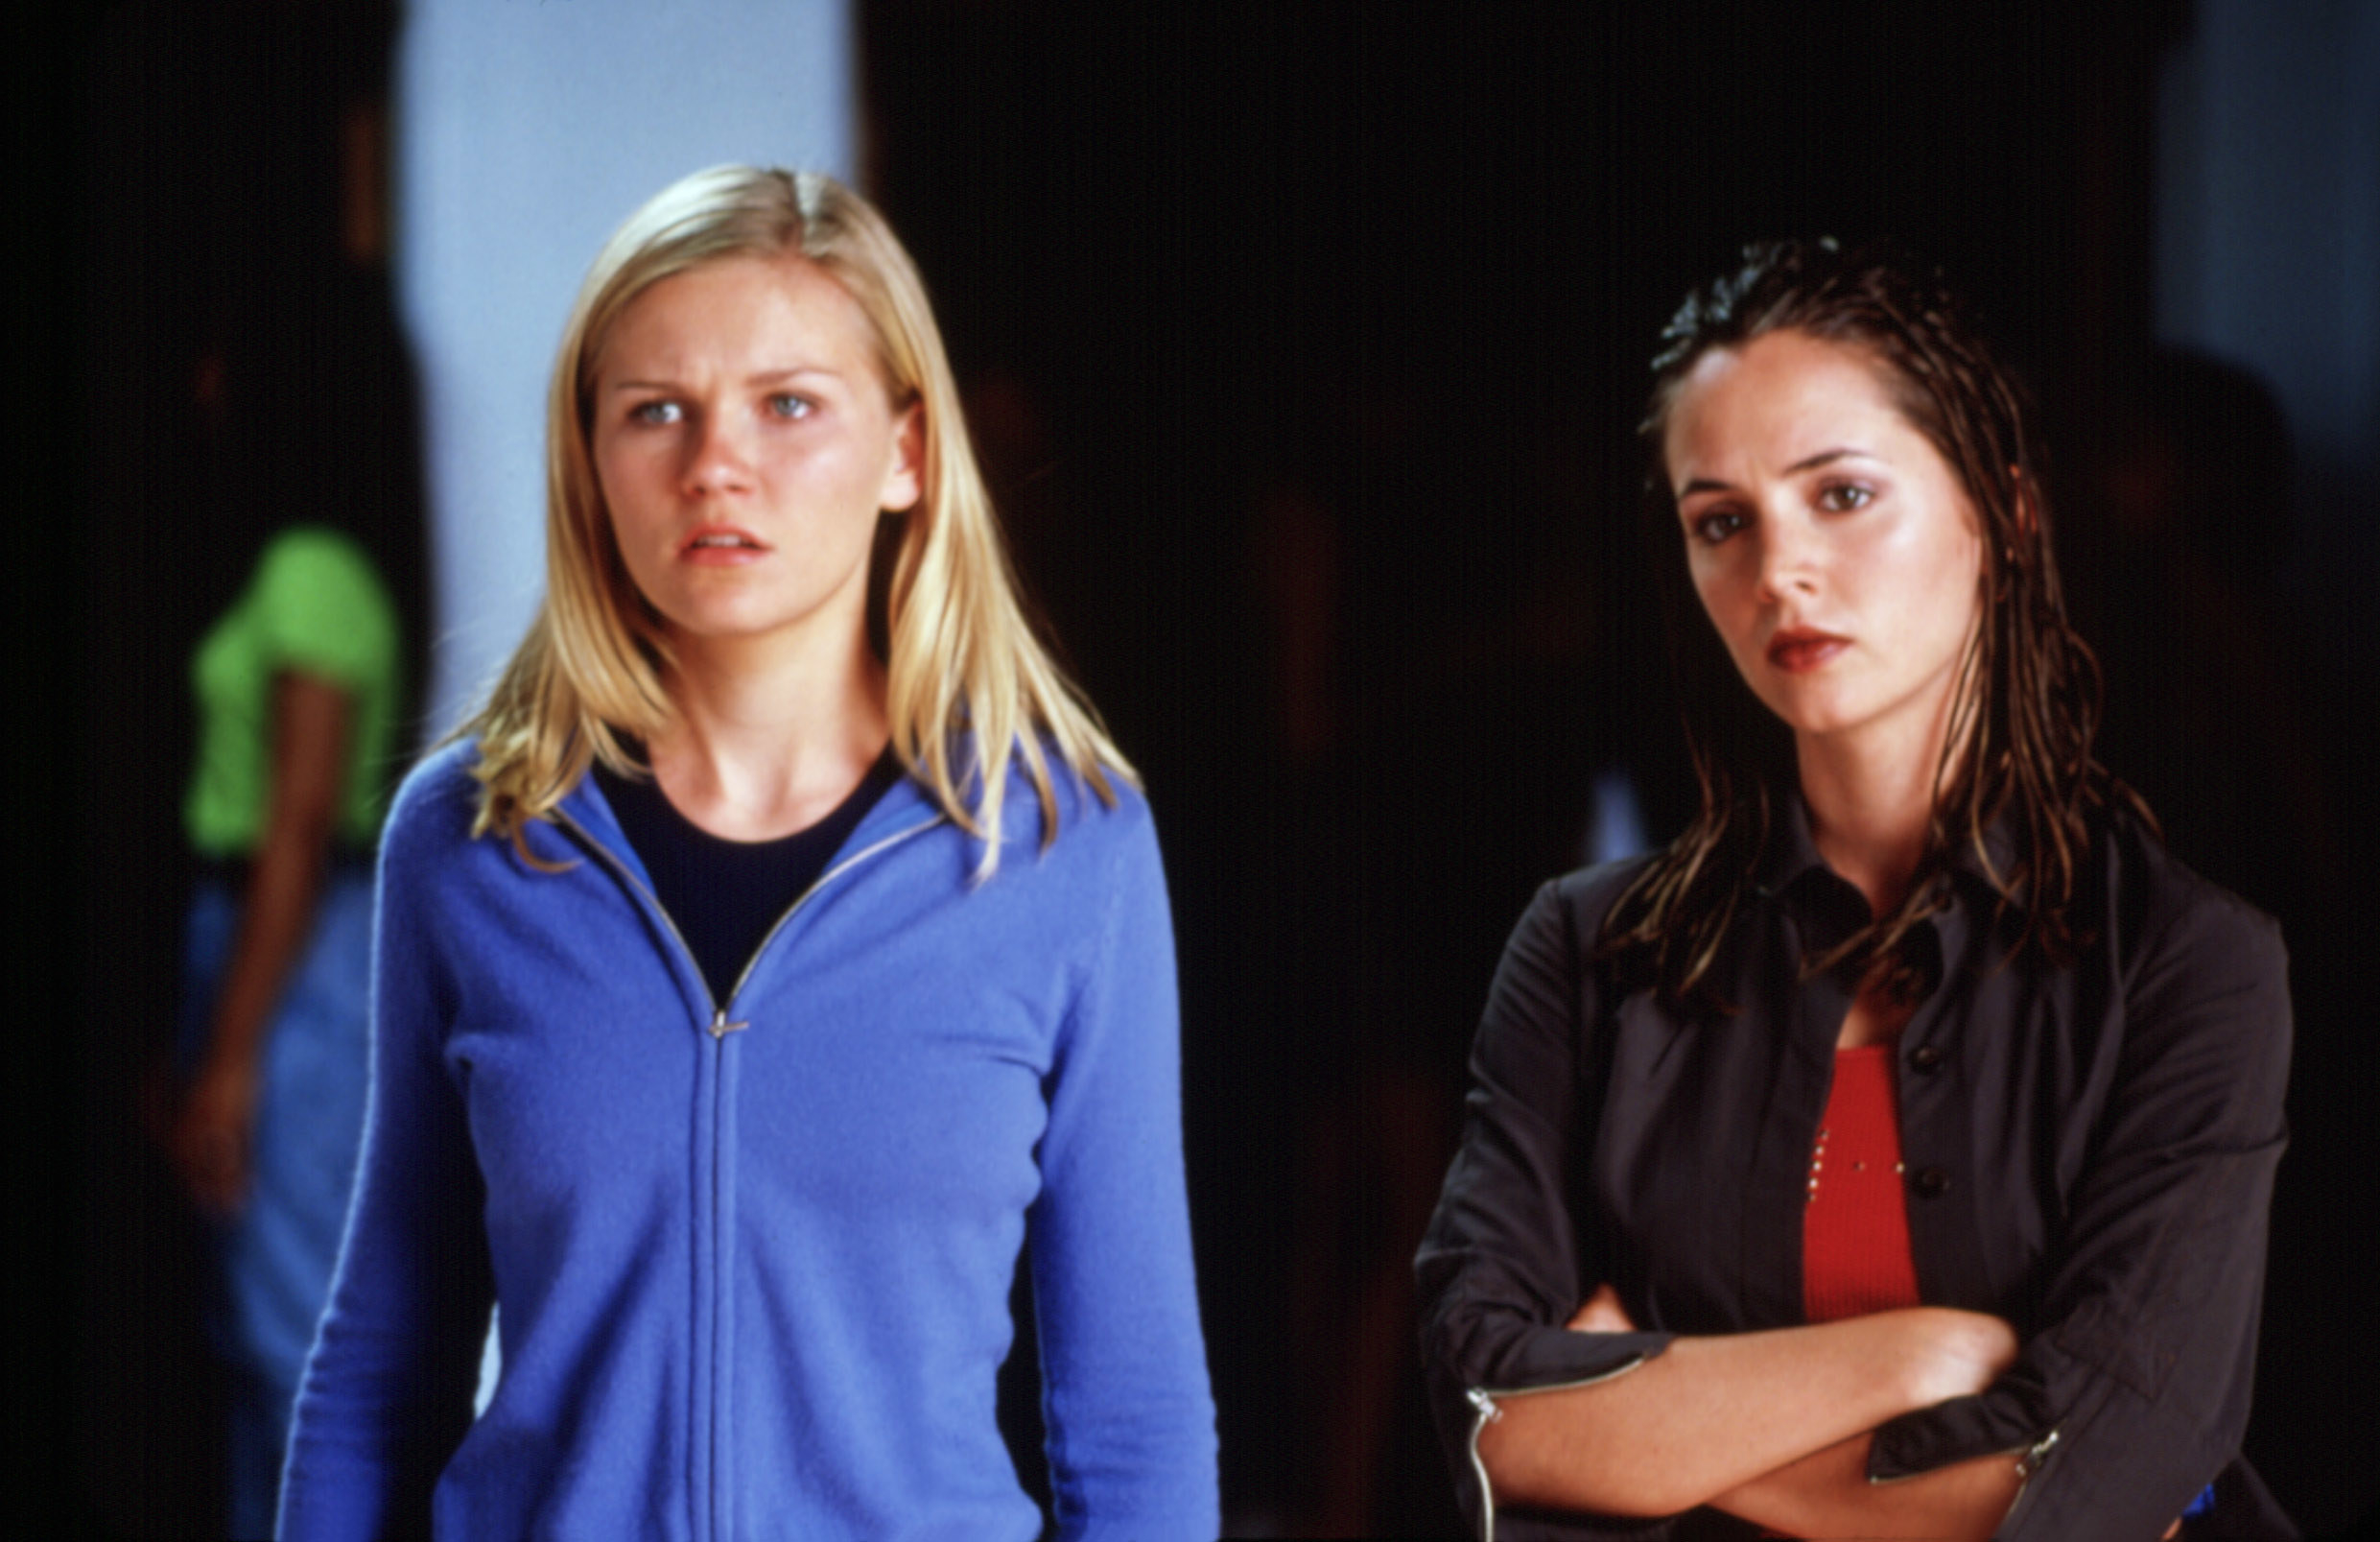 Kirsten and Eliza standing together in the movie